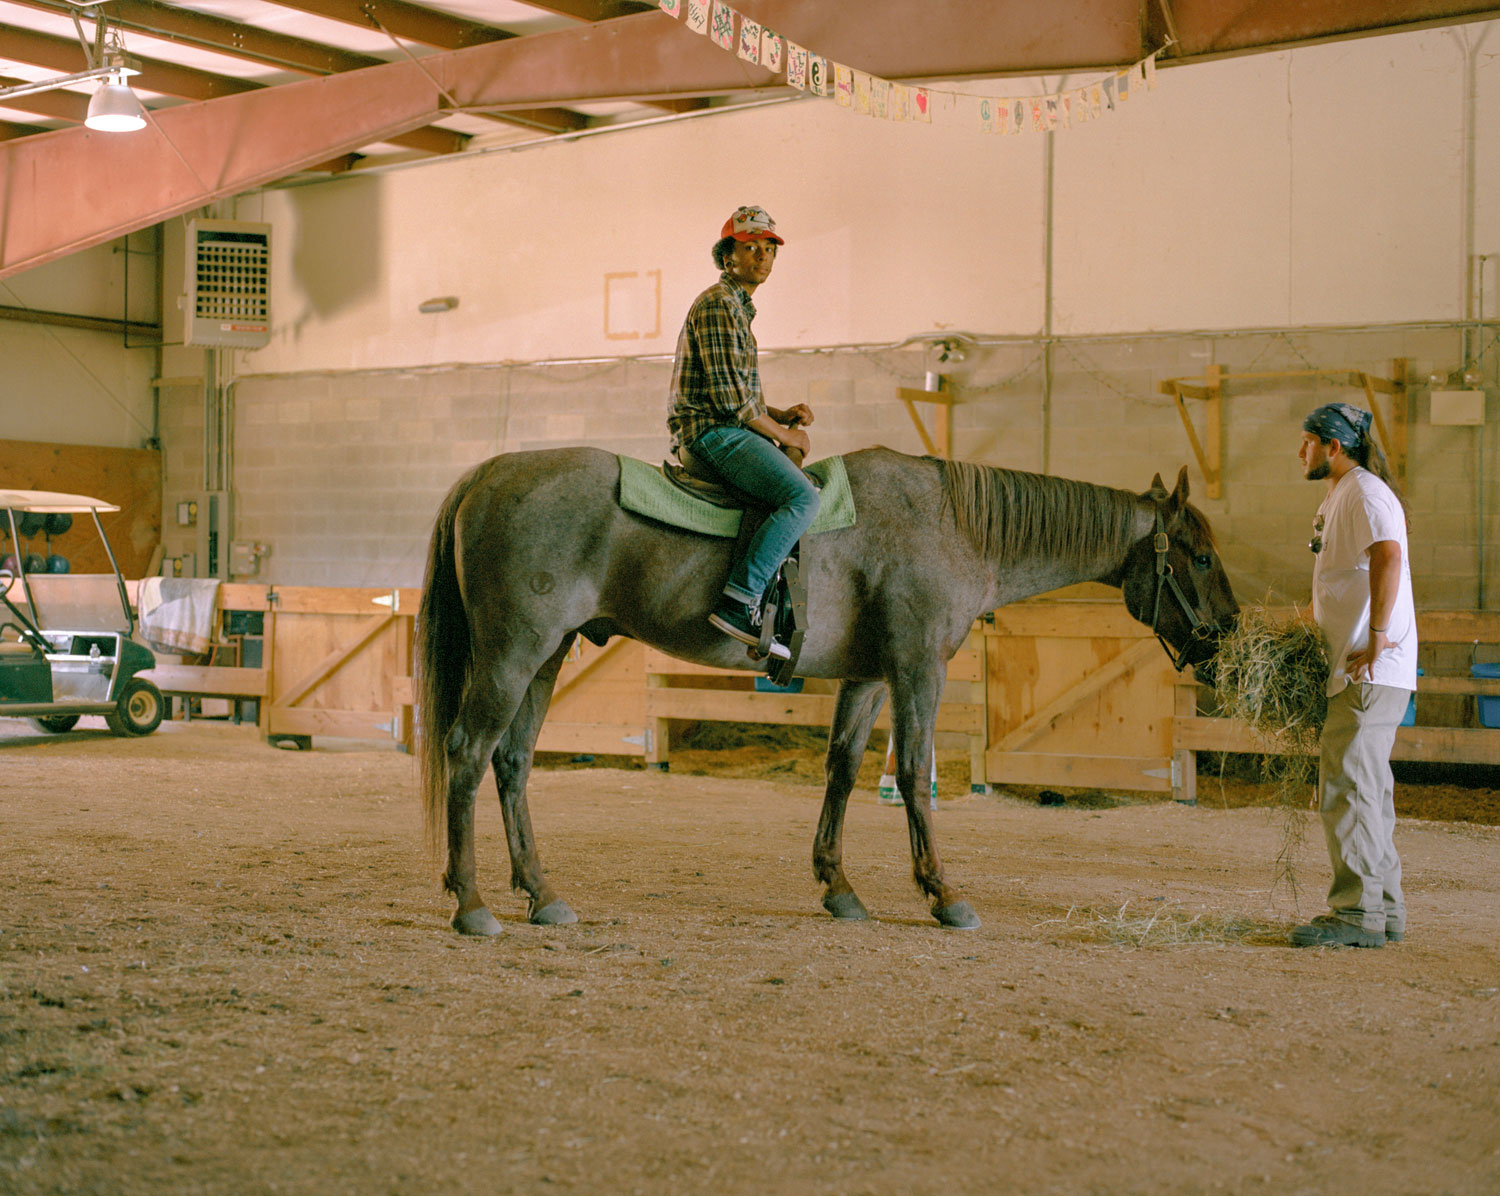 Nikkita, center, and Jay, right, tend to the horses at Hope Farm's stable.